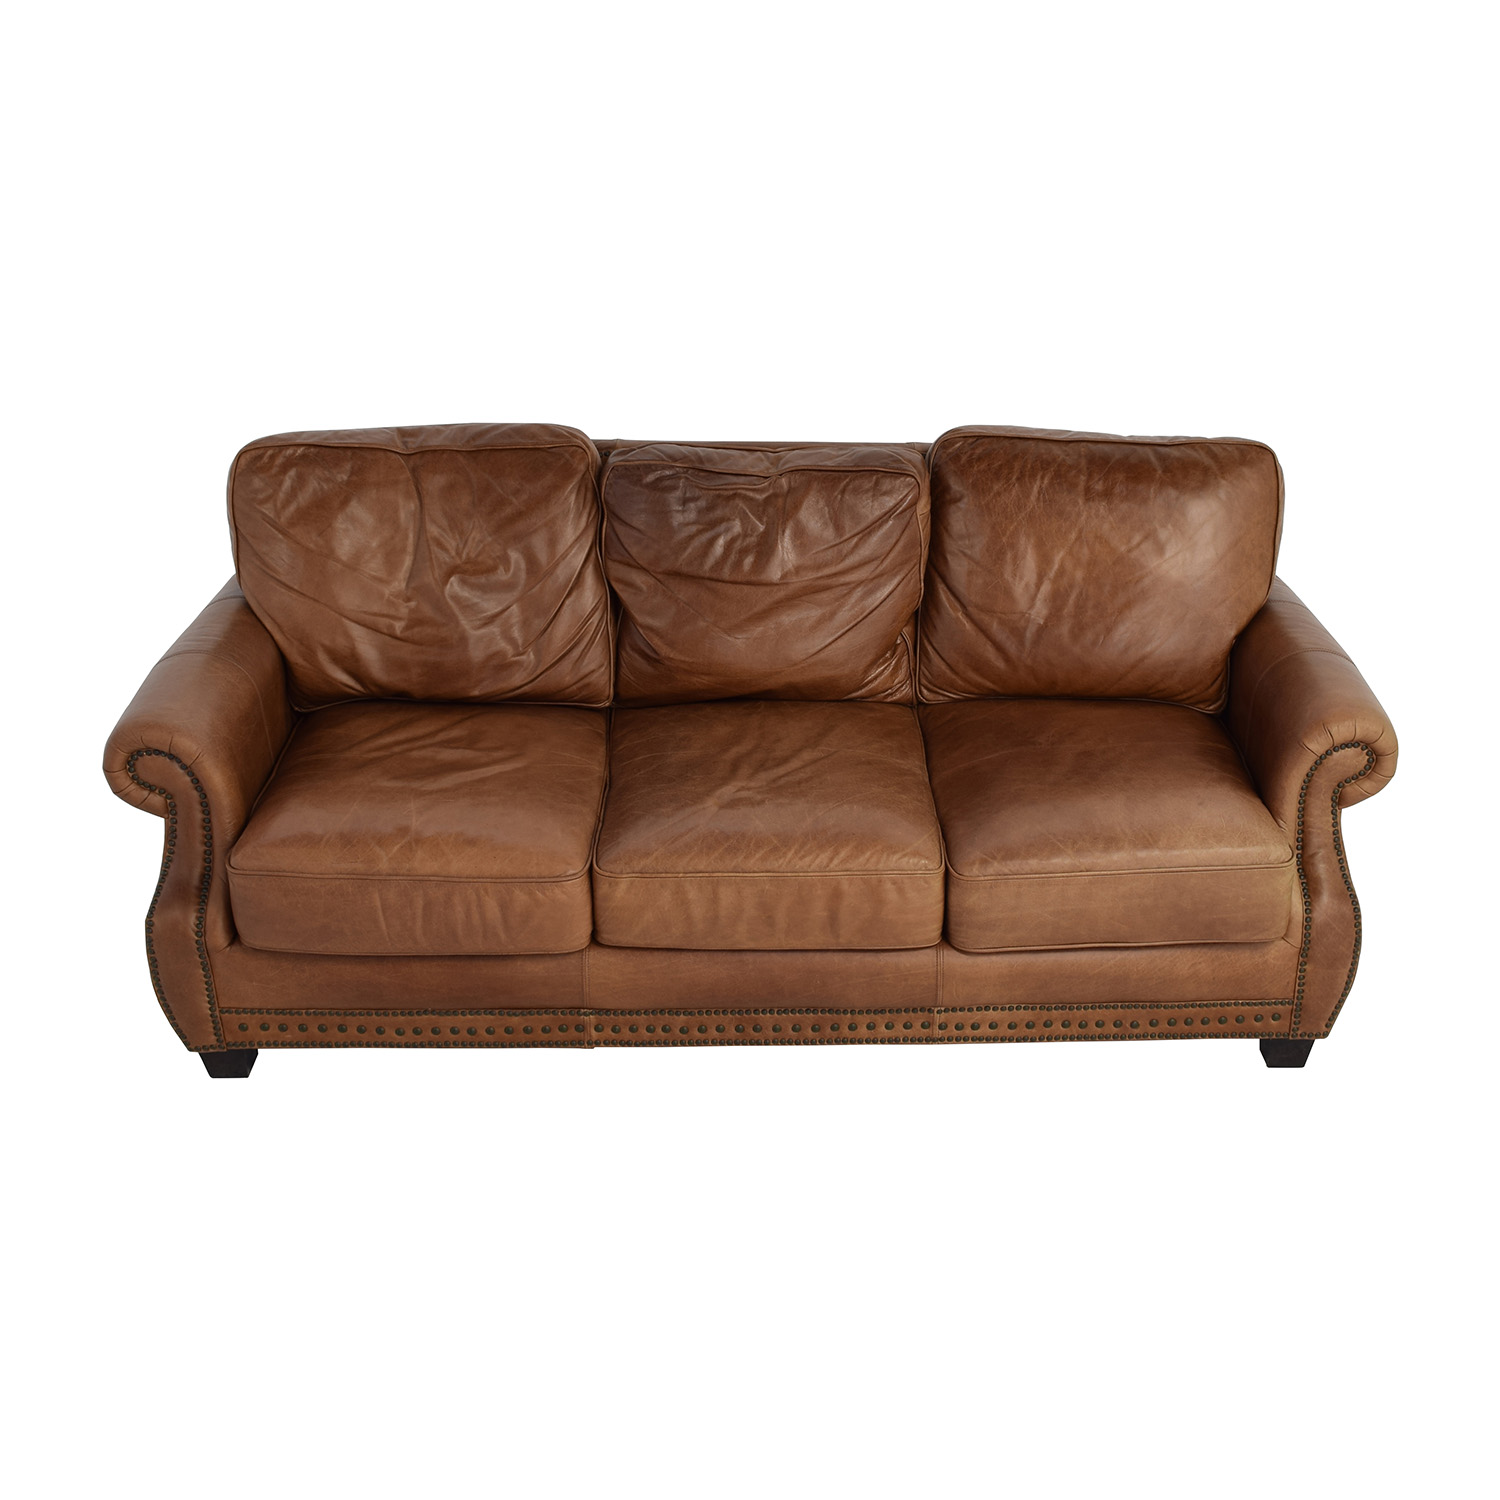 used sofa dark in small living room brown leather penaime thesofa